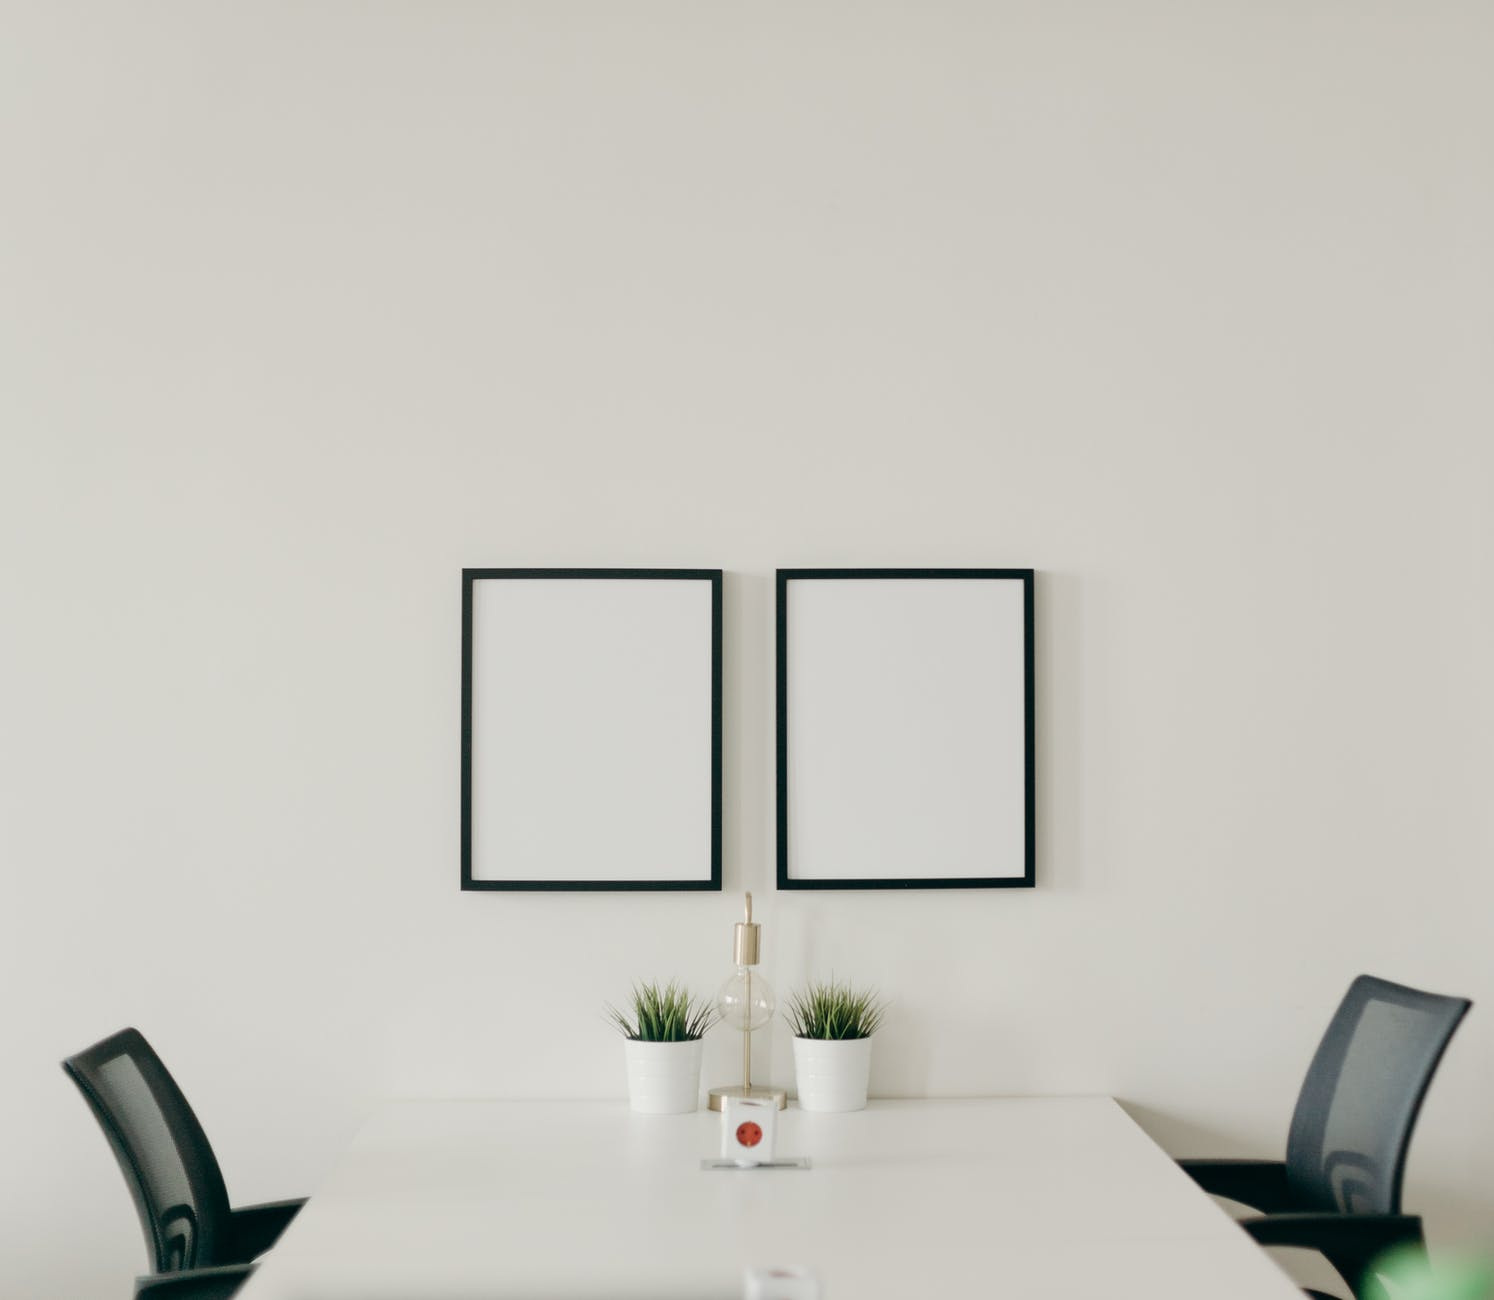 white wooden table with chairs in a room